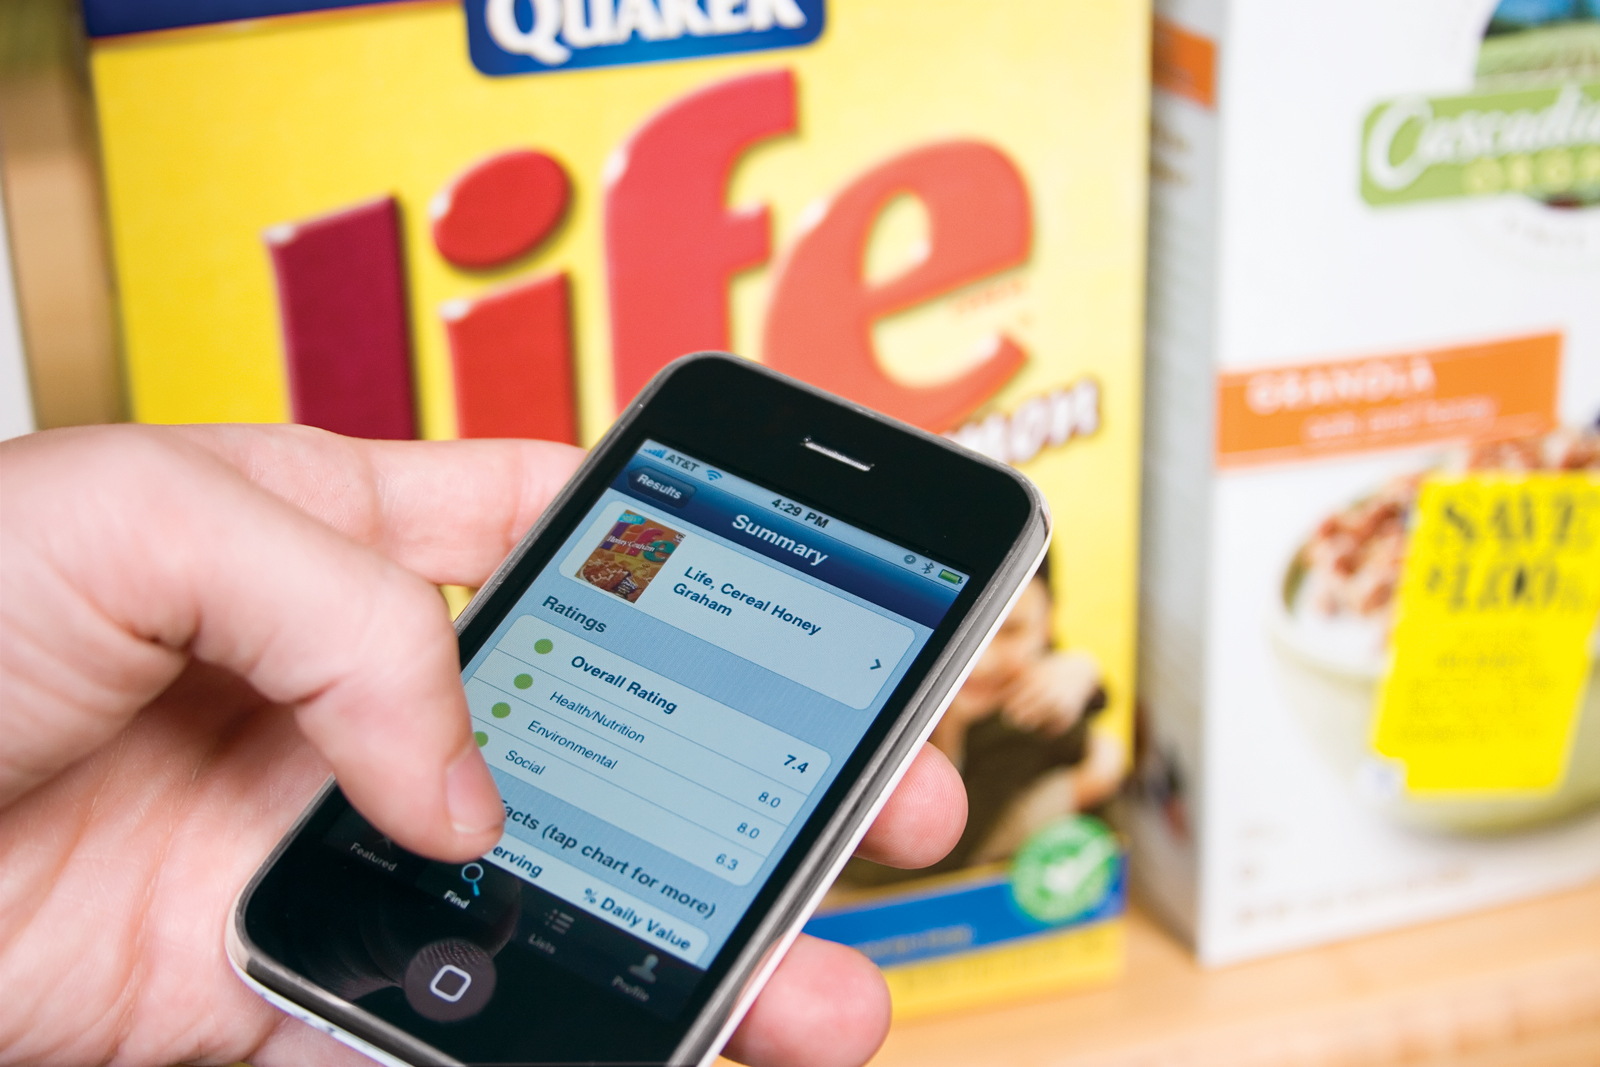 Using a mobile device, shoppers can get third-party information about their food. Image courtesy Goodguide.